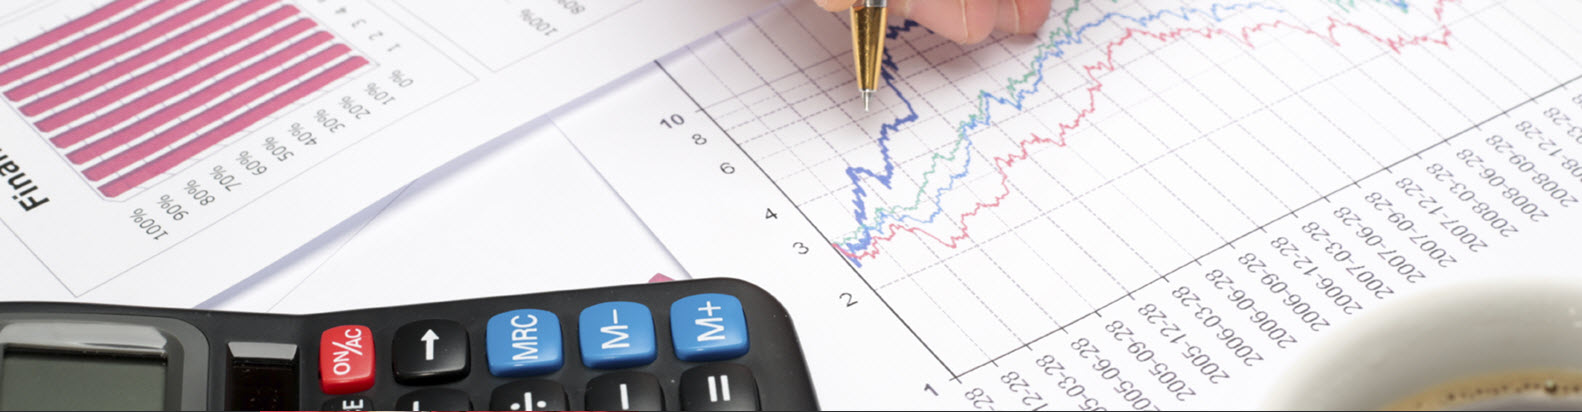 enterprise accounting software